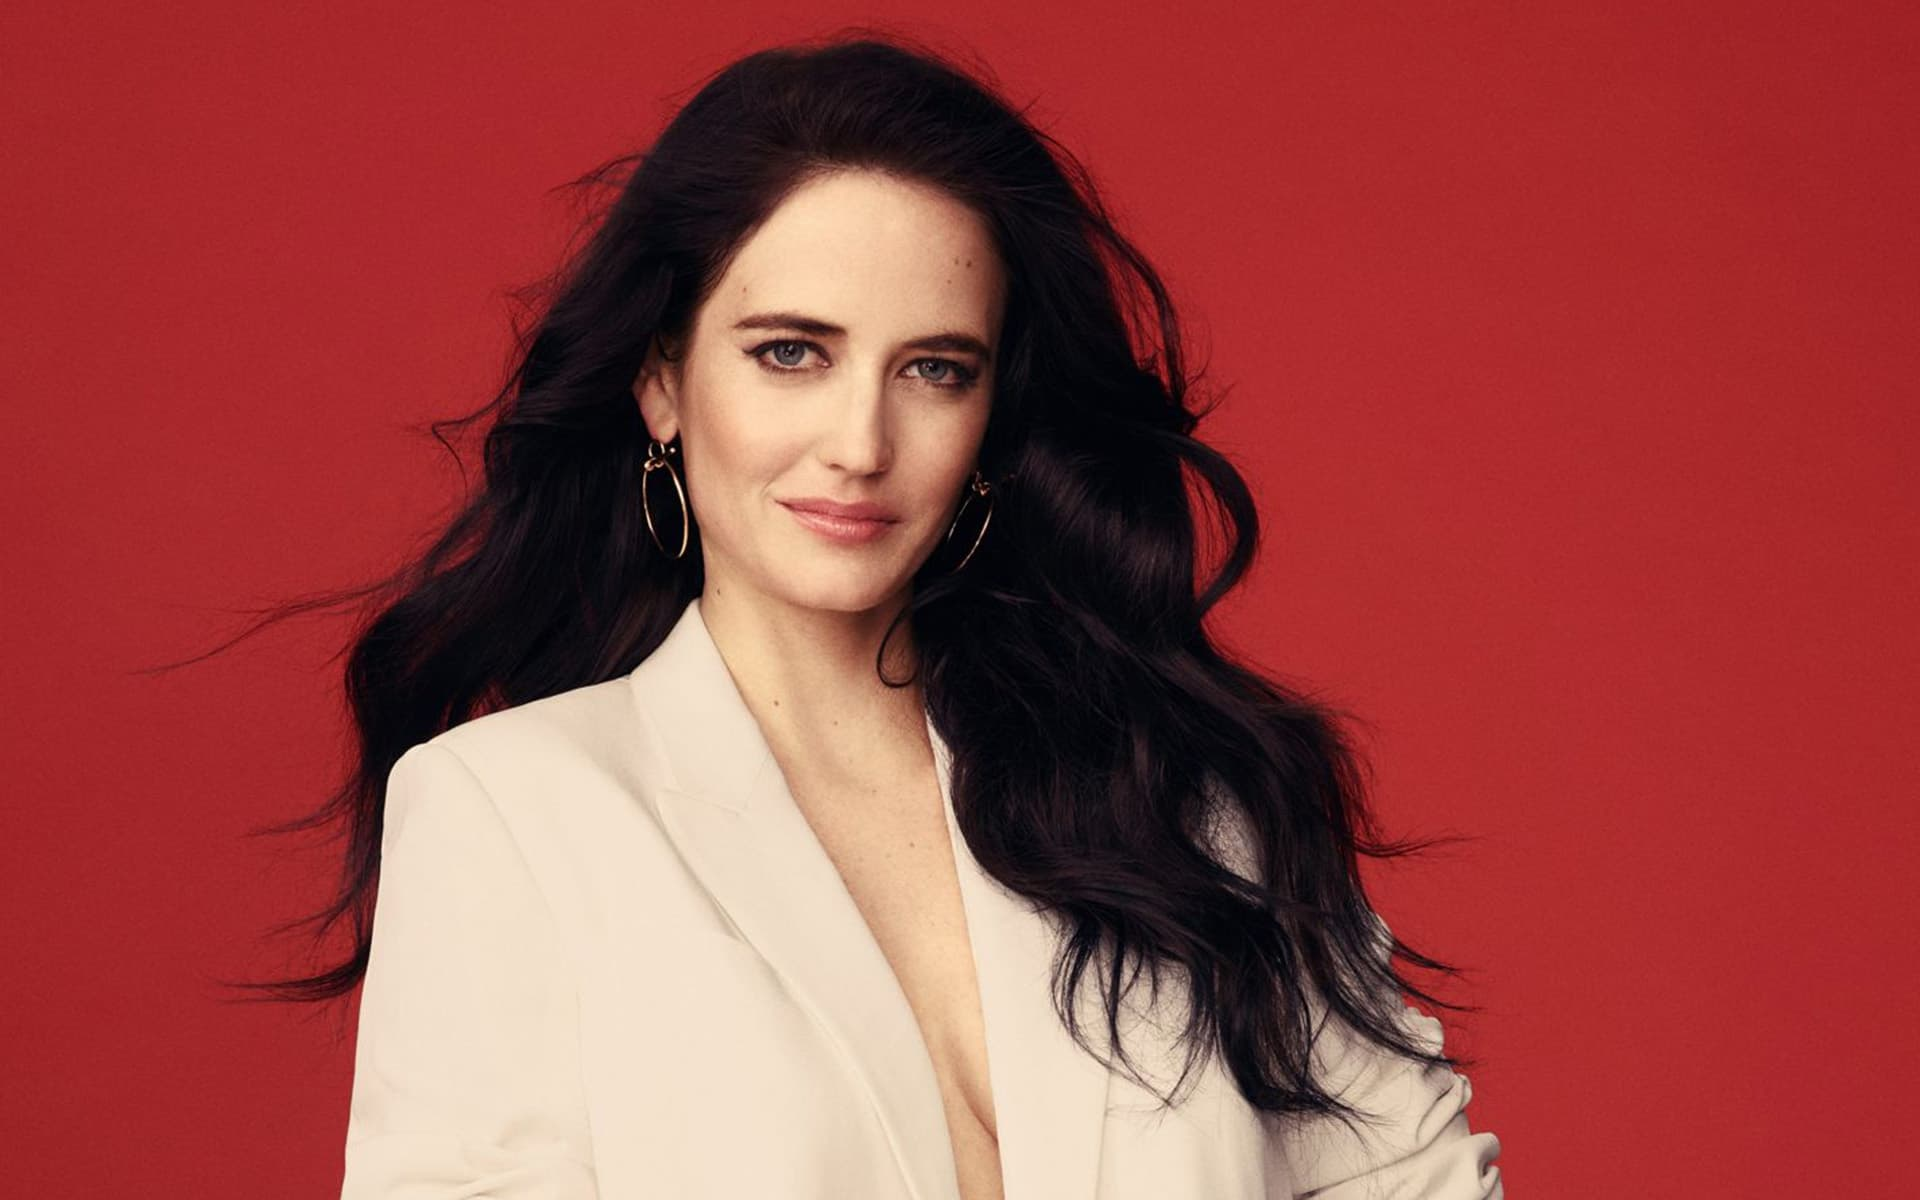 Eva Green Wallpapers HD, Photos Images and Pictures for ...